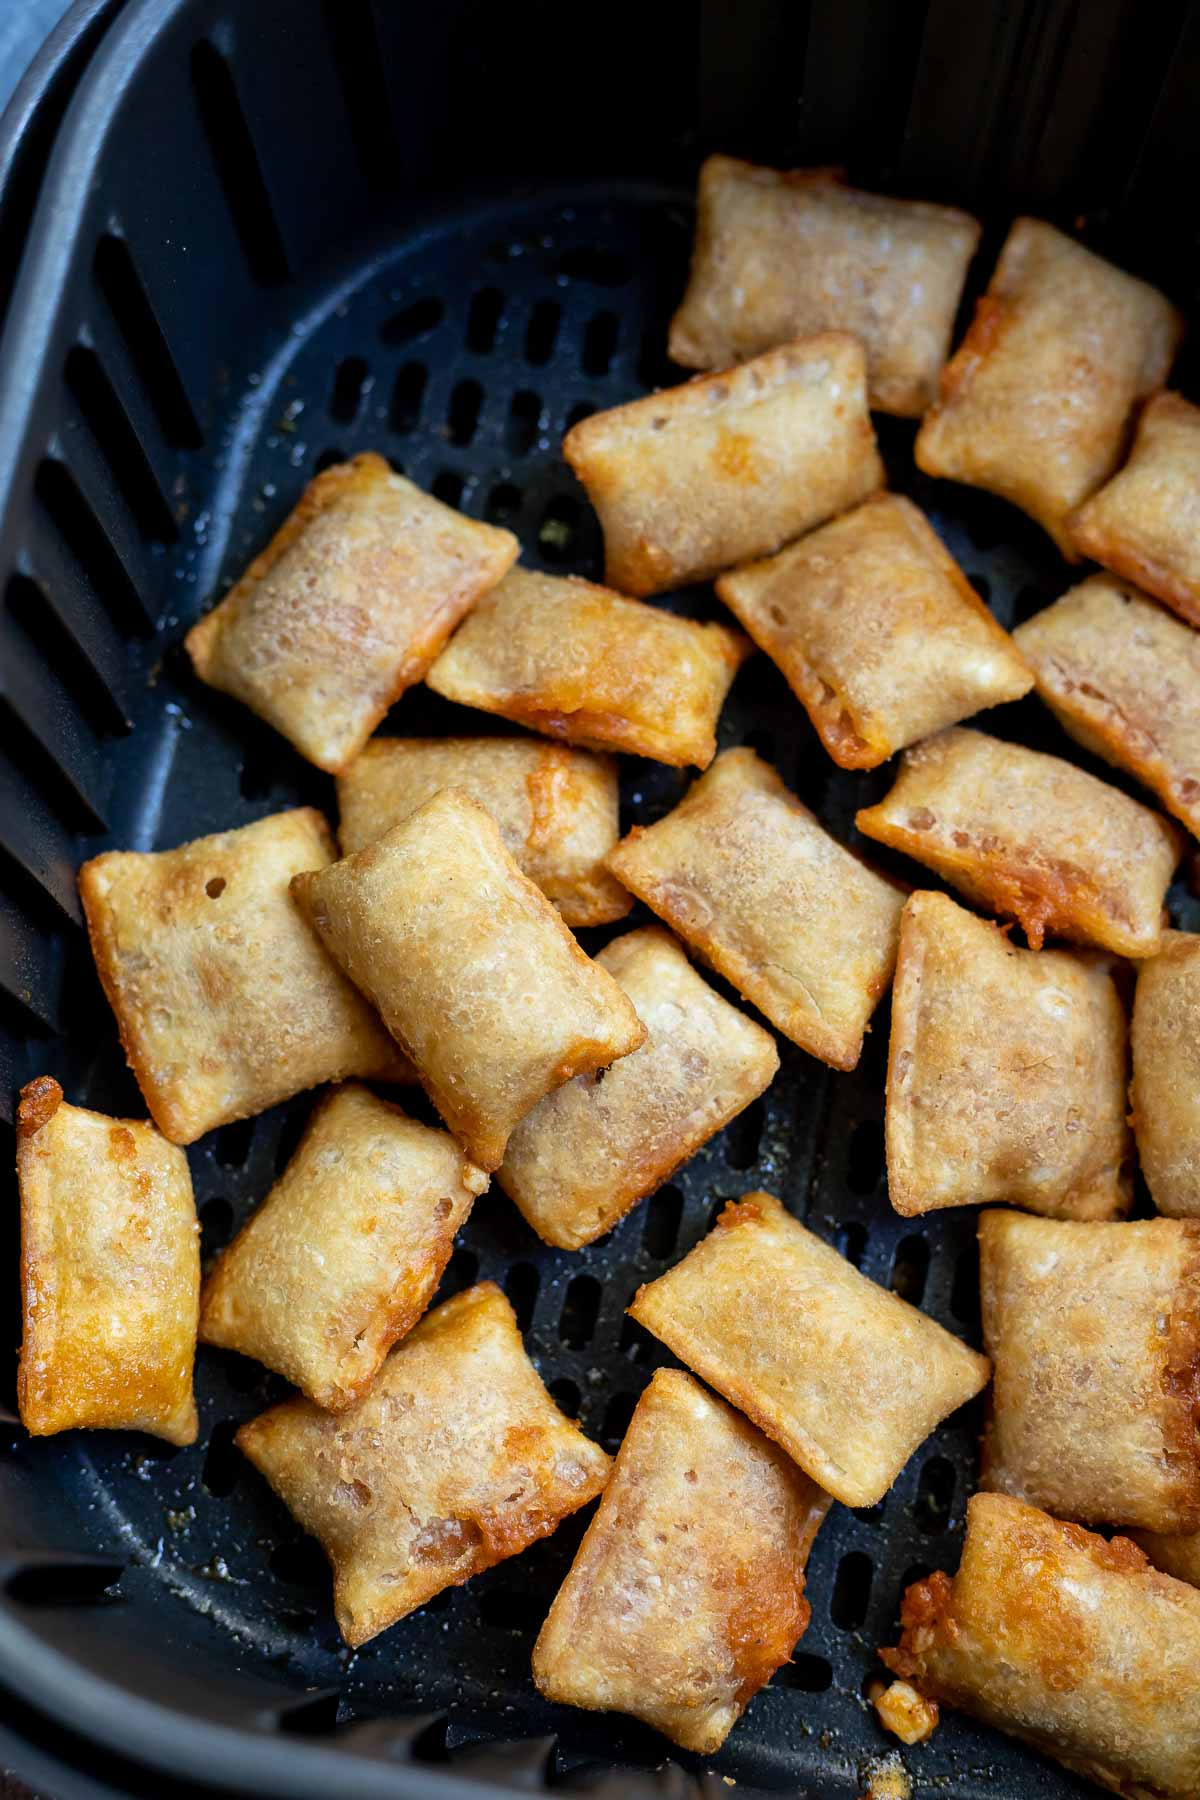 cooked pizza rolls in air fryer basket